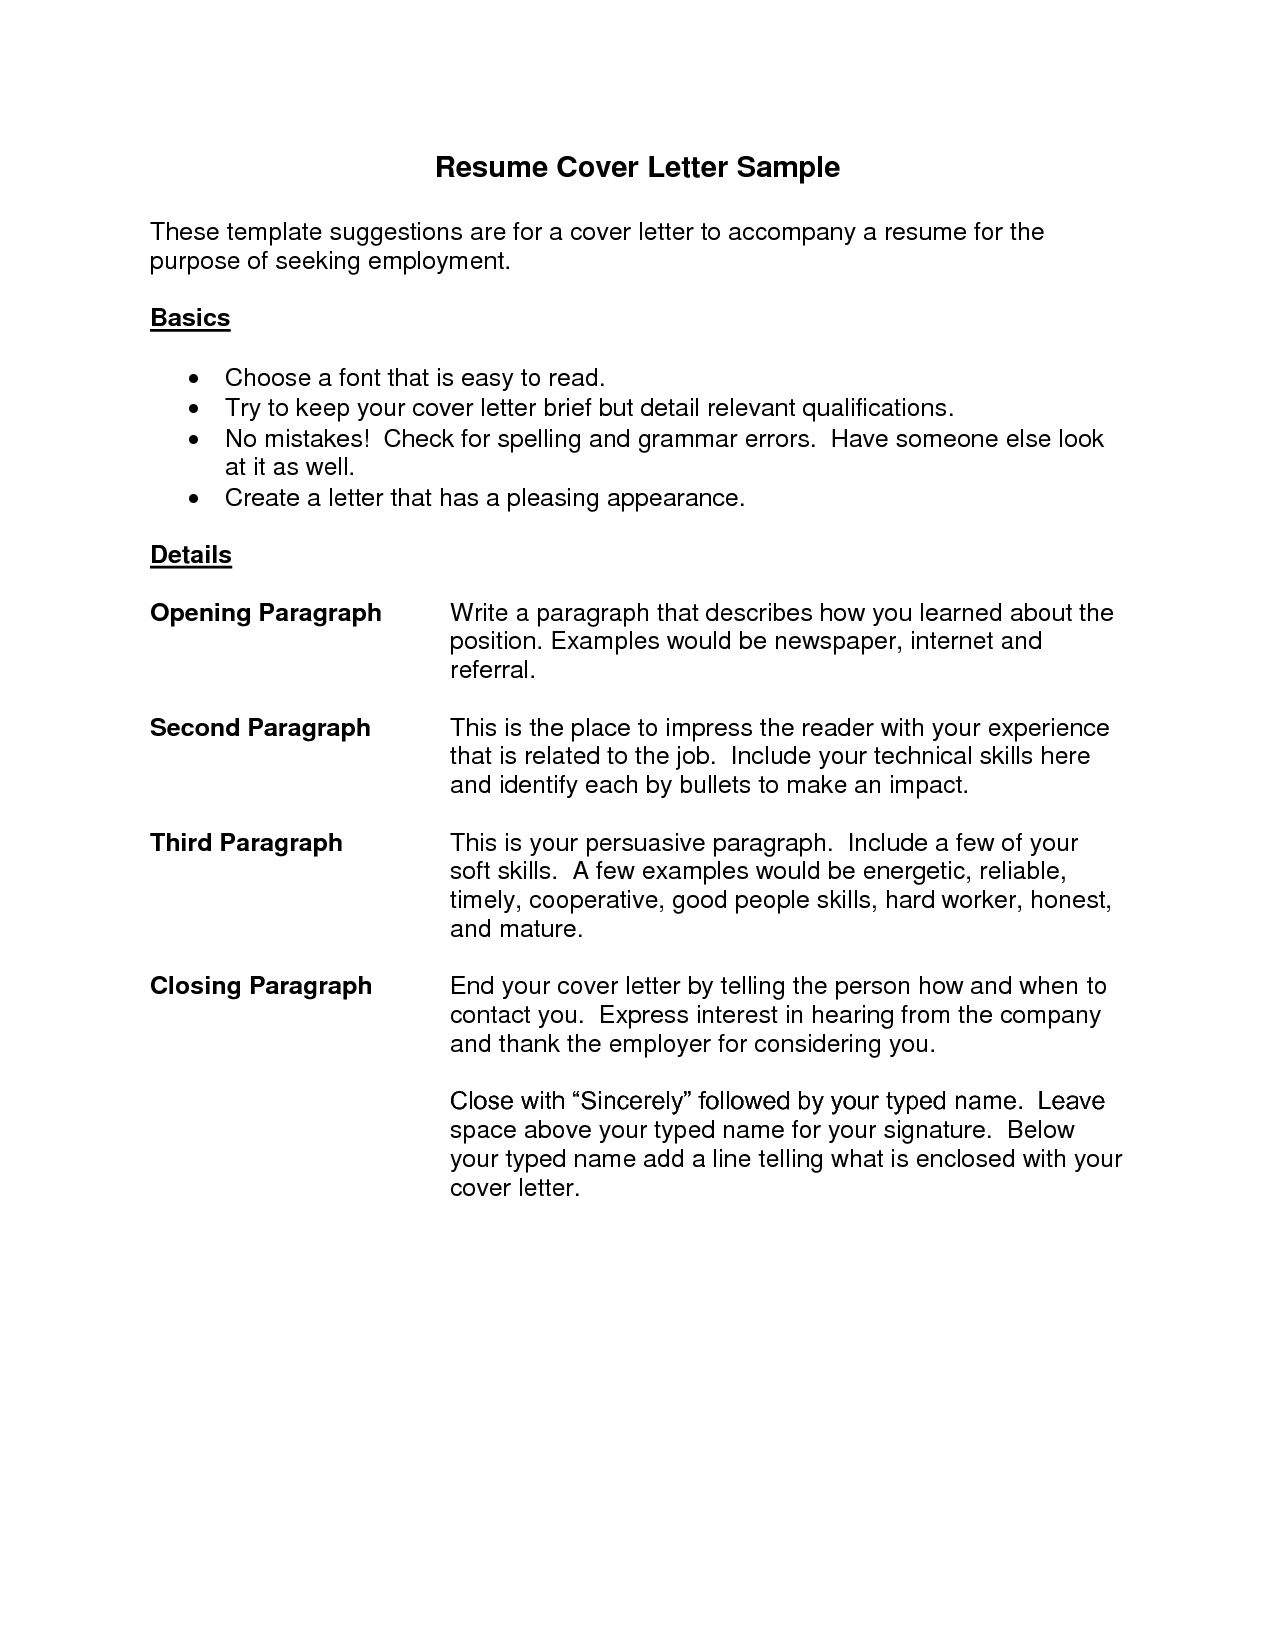 Cover Letter Resume Best TemplateSimple Cover Letter Application – Sample Resume Letter